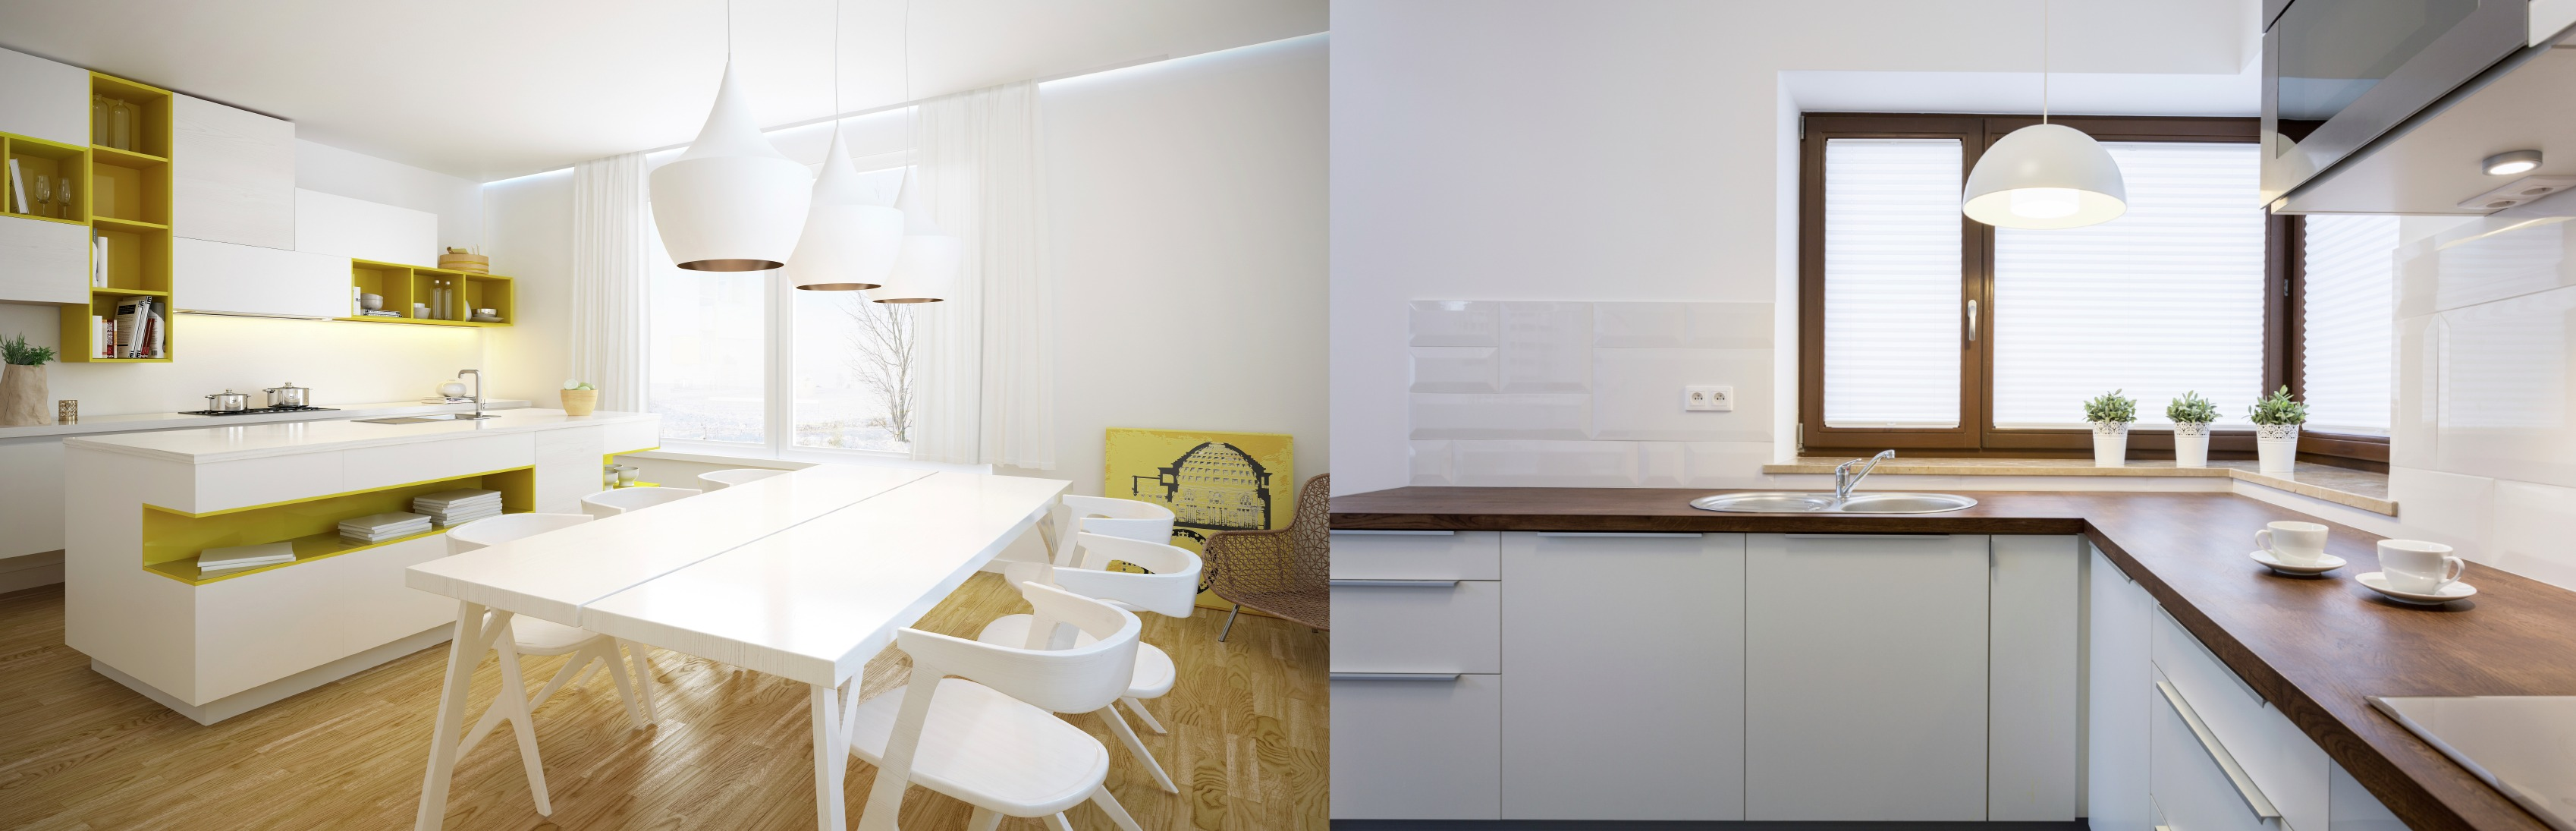 All white kitchens the pros and cons for Pros and cons of white kitchen cabinets